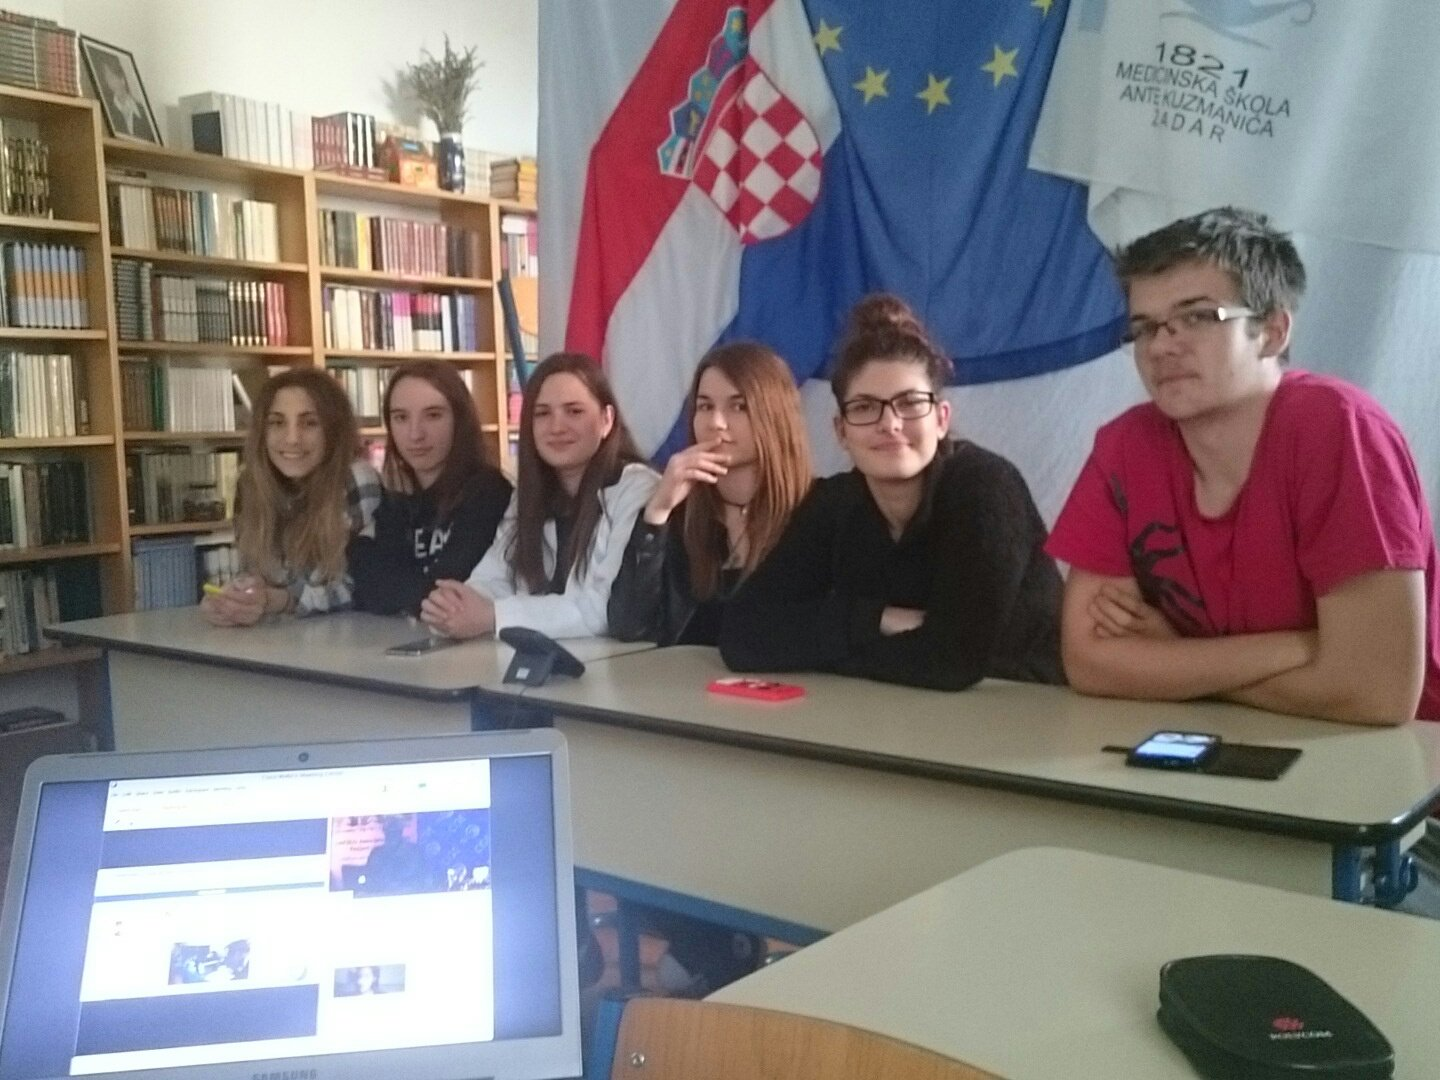 Croatia and its team say hi 🇭🇷😁#Blueyouth #Decarbonize https://t.co/jkJZv9UdVr